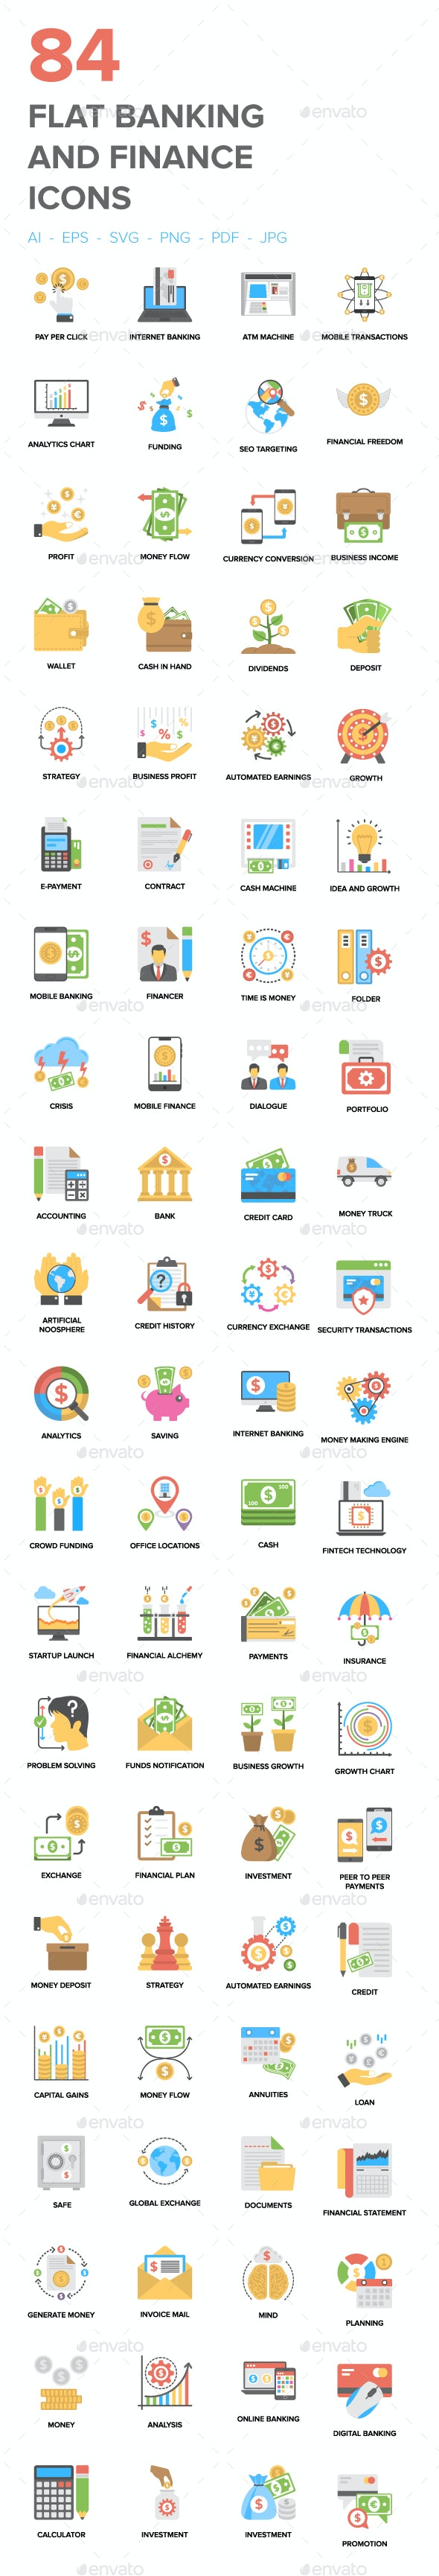 84 Flat Banking and Finance Icons - Icons